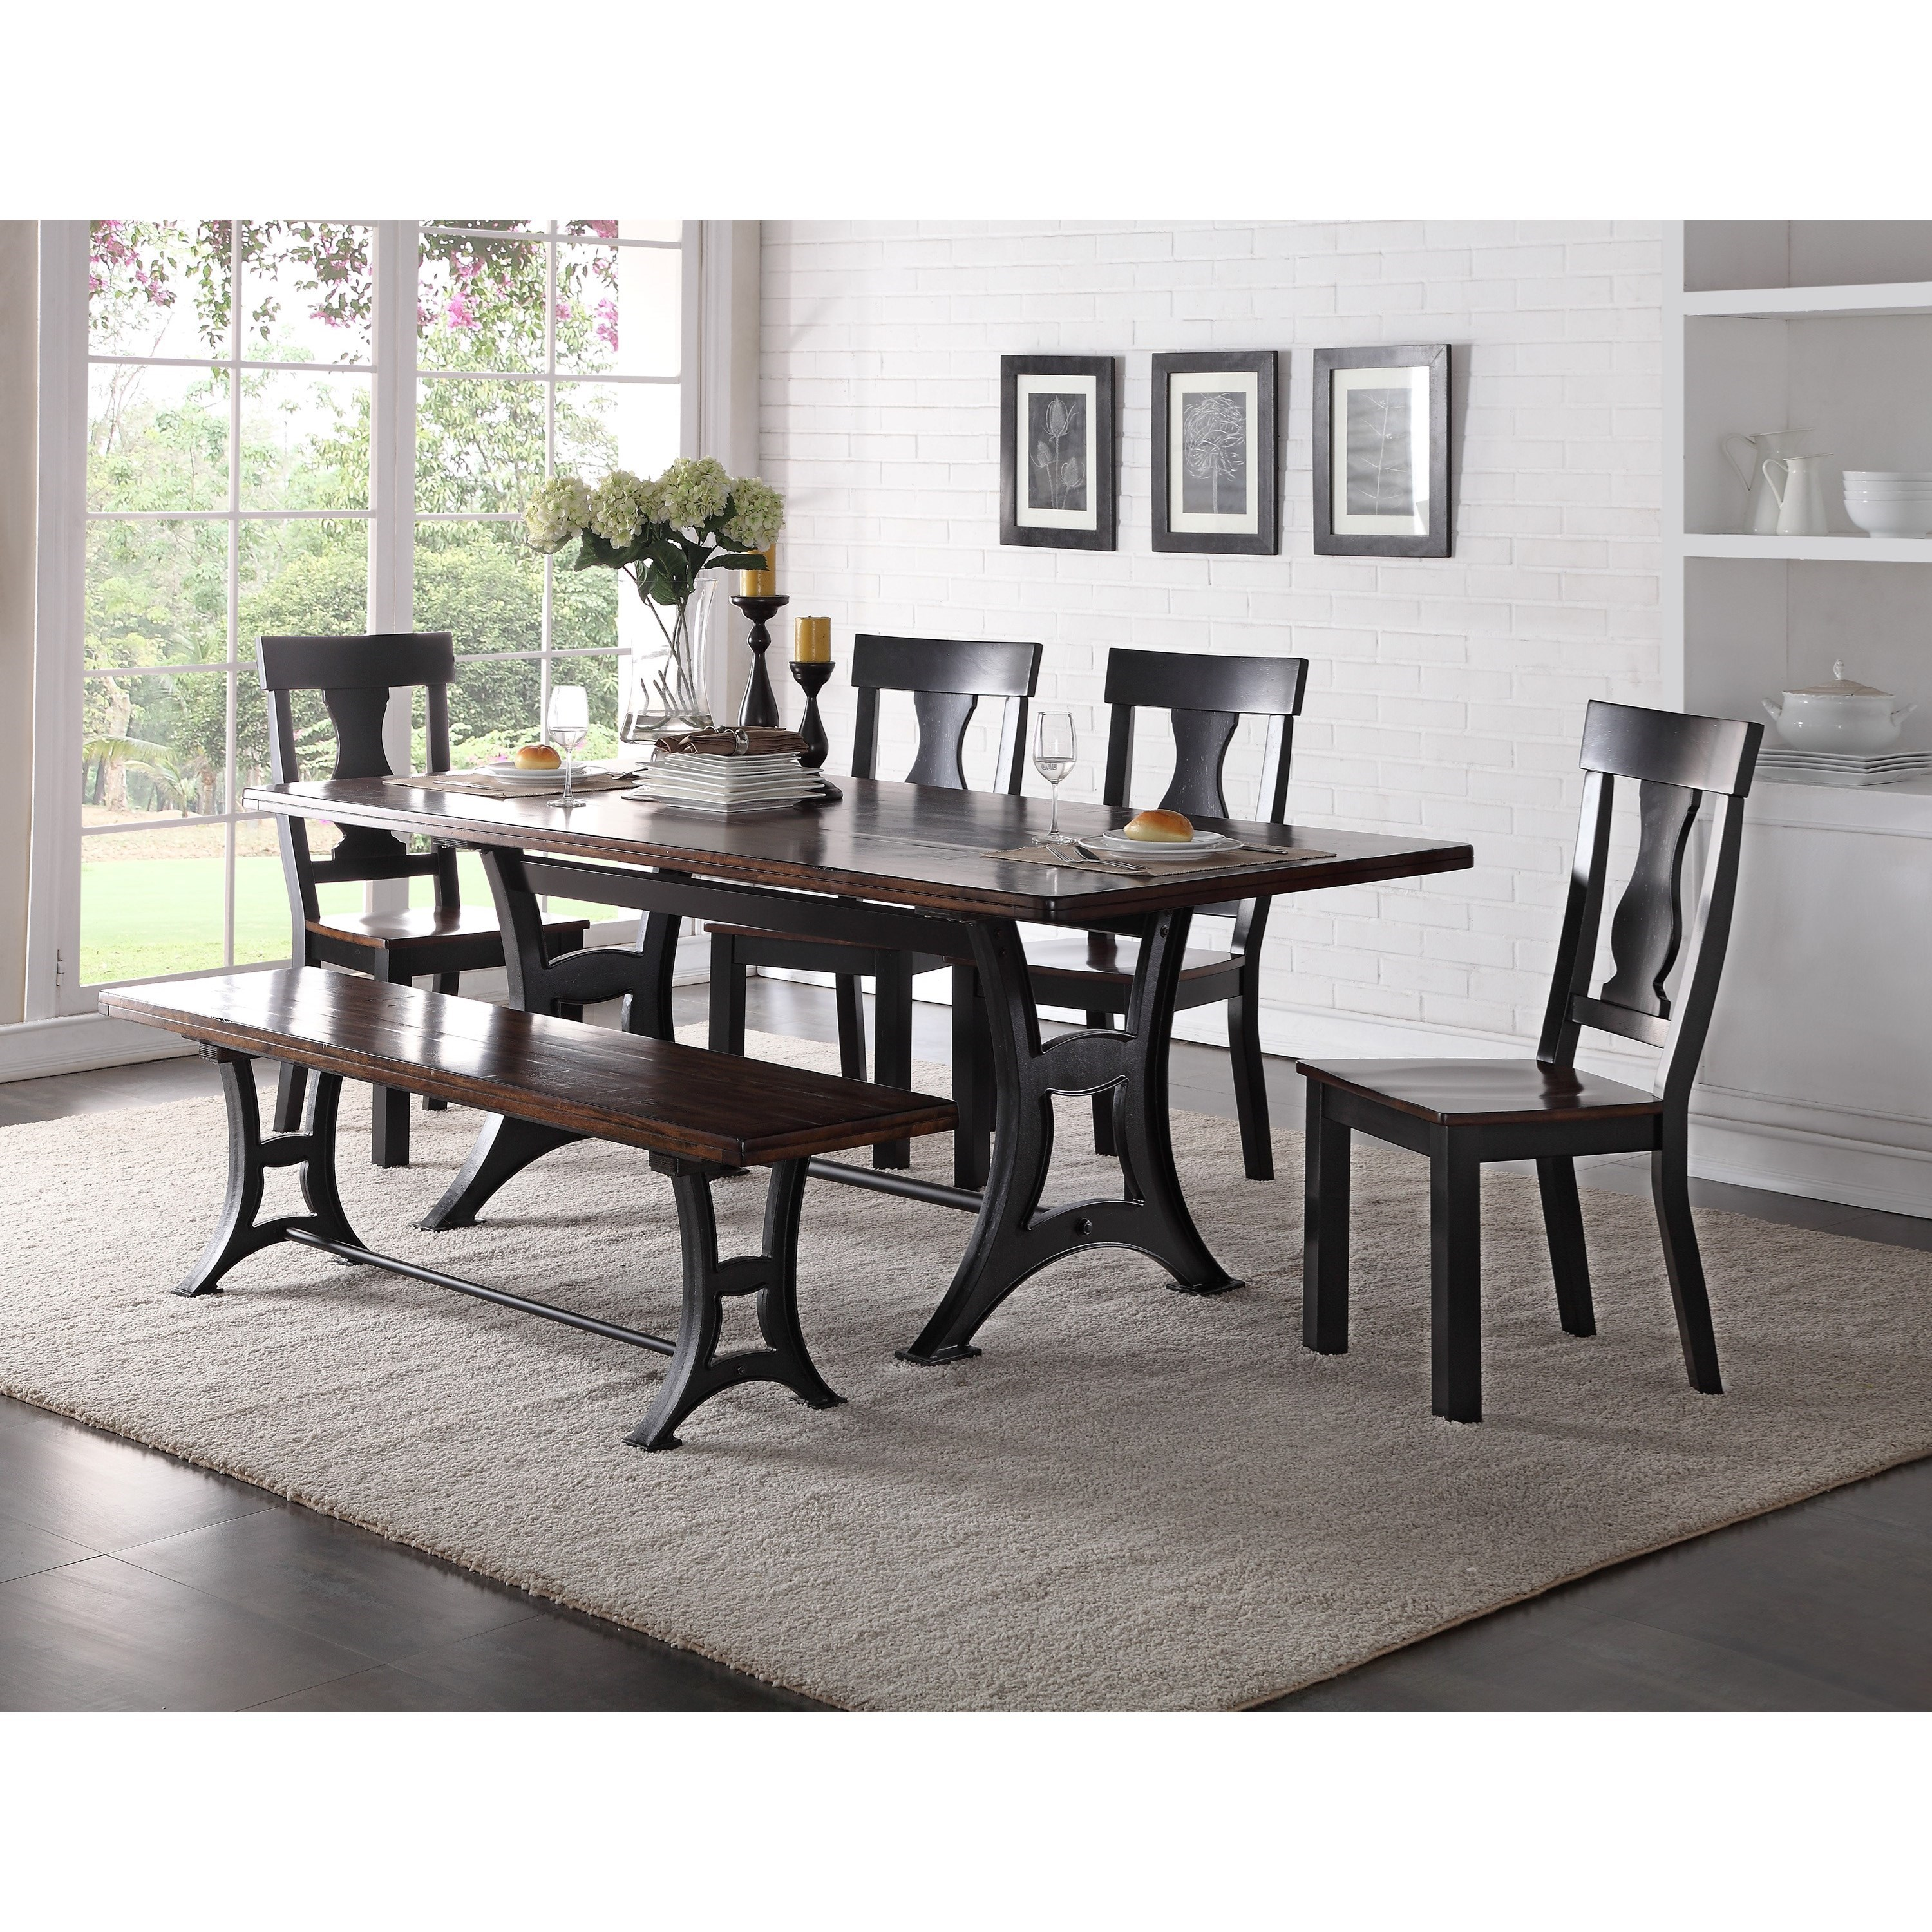 Dining Room Furniture Essentials: Belfort Essentials Astor Industrial Dining Table With